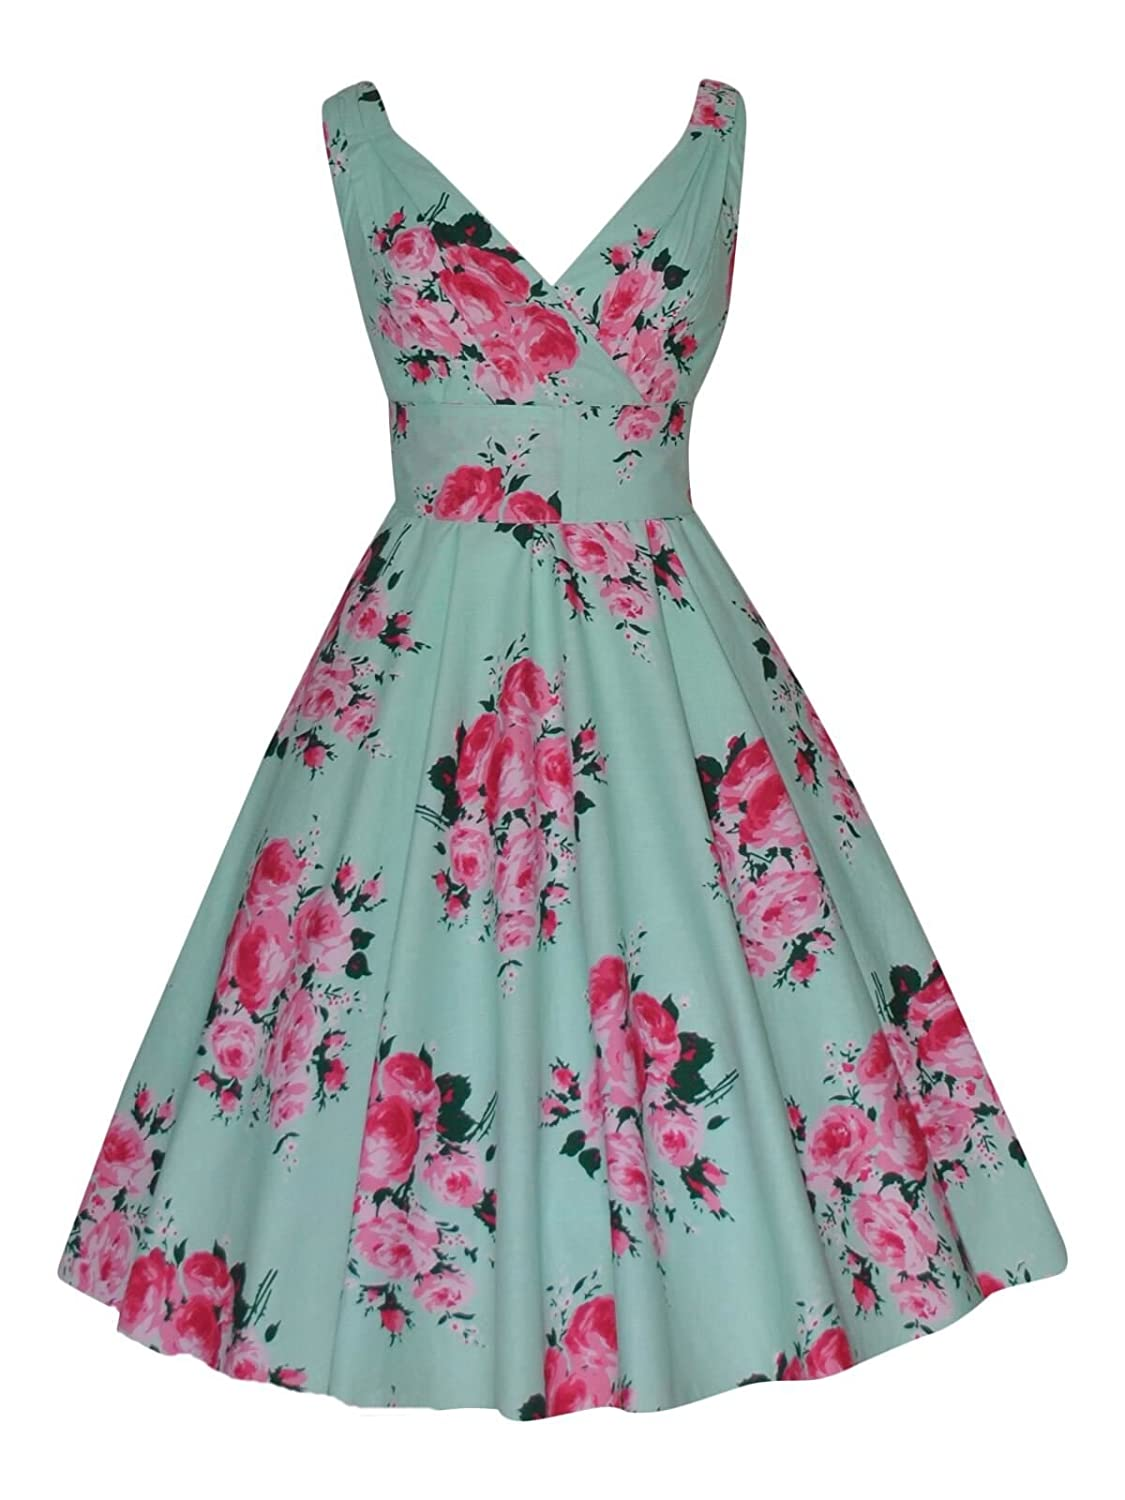 Ladies 40's 50's Vintage Mint Pink Rose Bouquet Full Flared Cotton Prom Bridesmaid Tea Dress